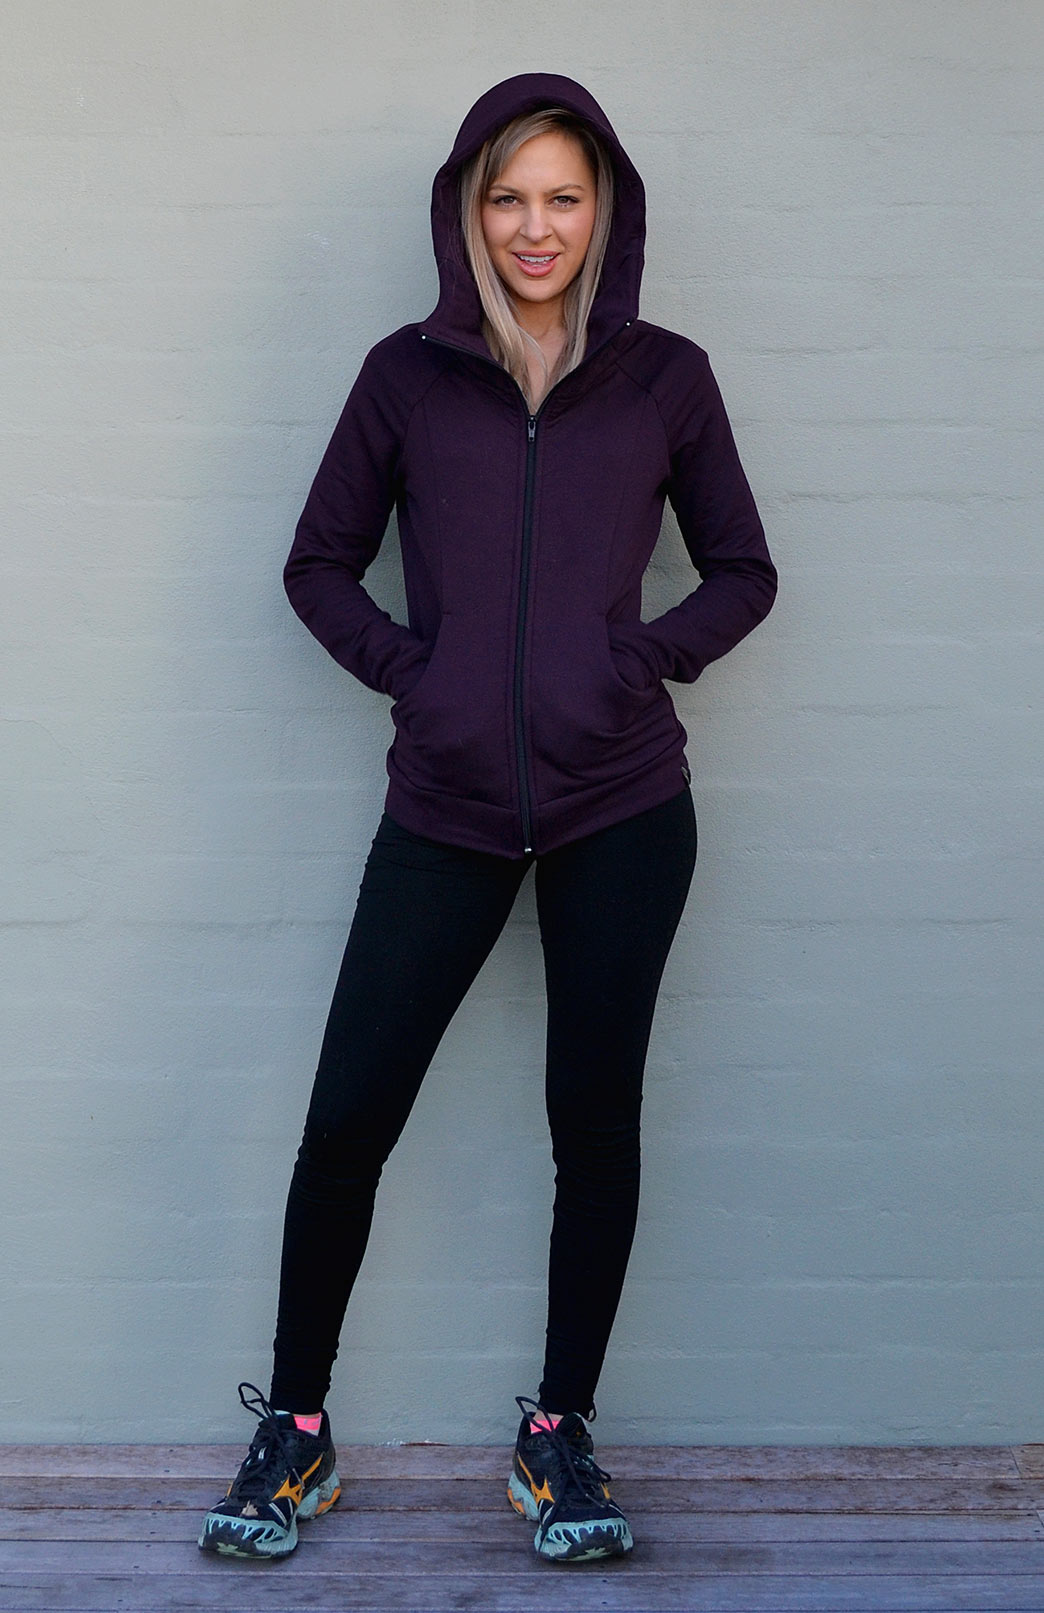 Fitted Fleece Hoody Jacket - Women's Merino Wool Fleece Classic Fitted Winter Jacket With Hood - Smitten Merino Tasmania Australia